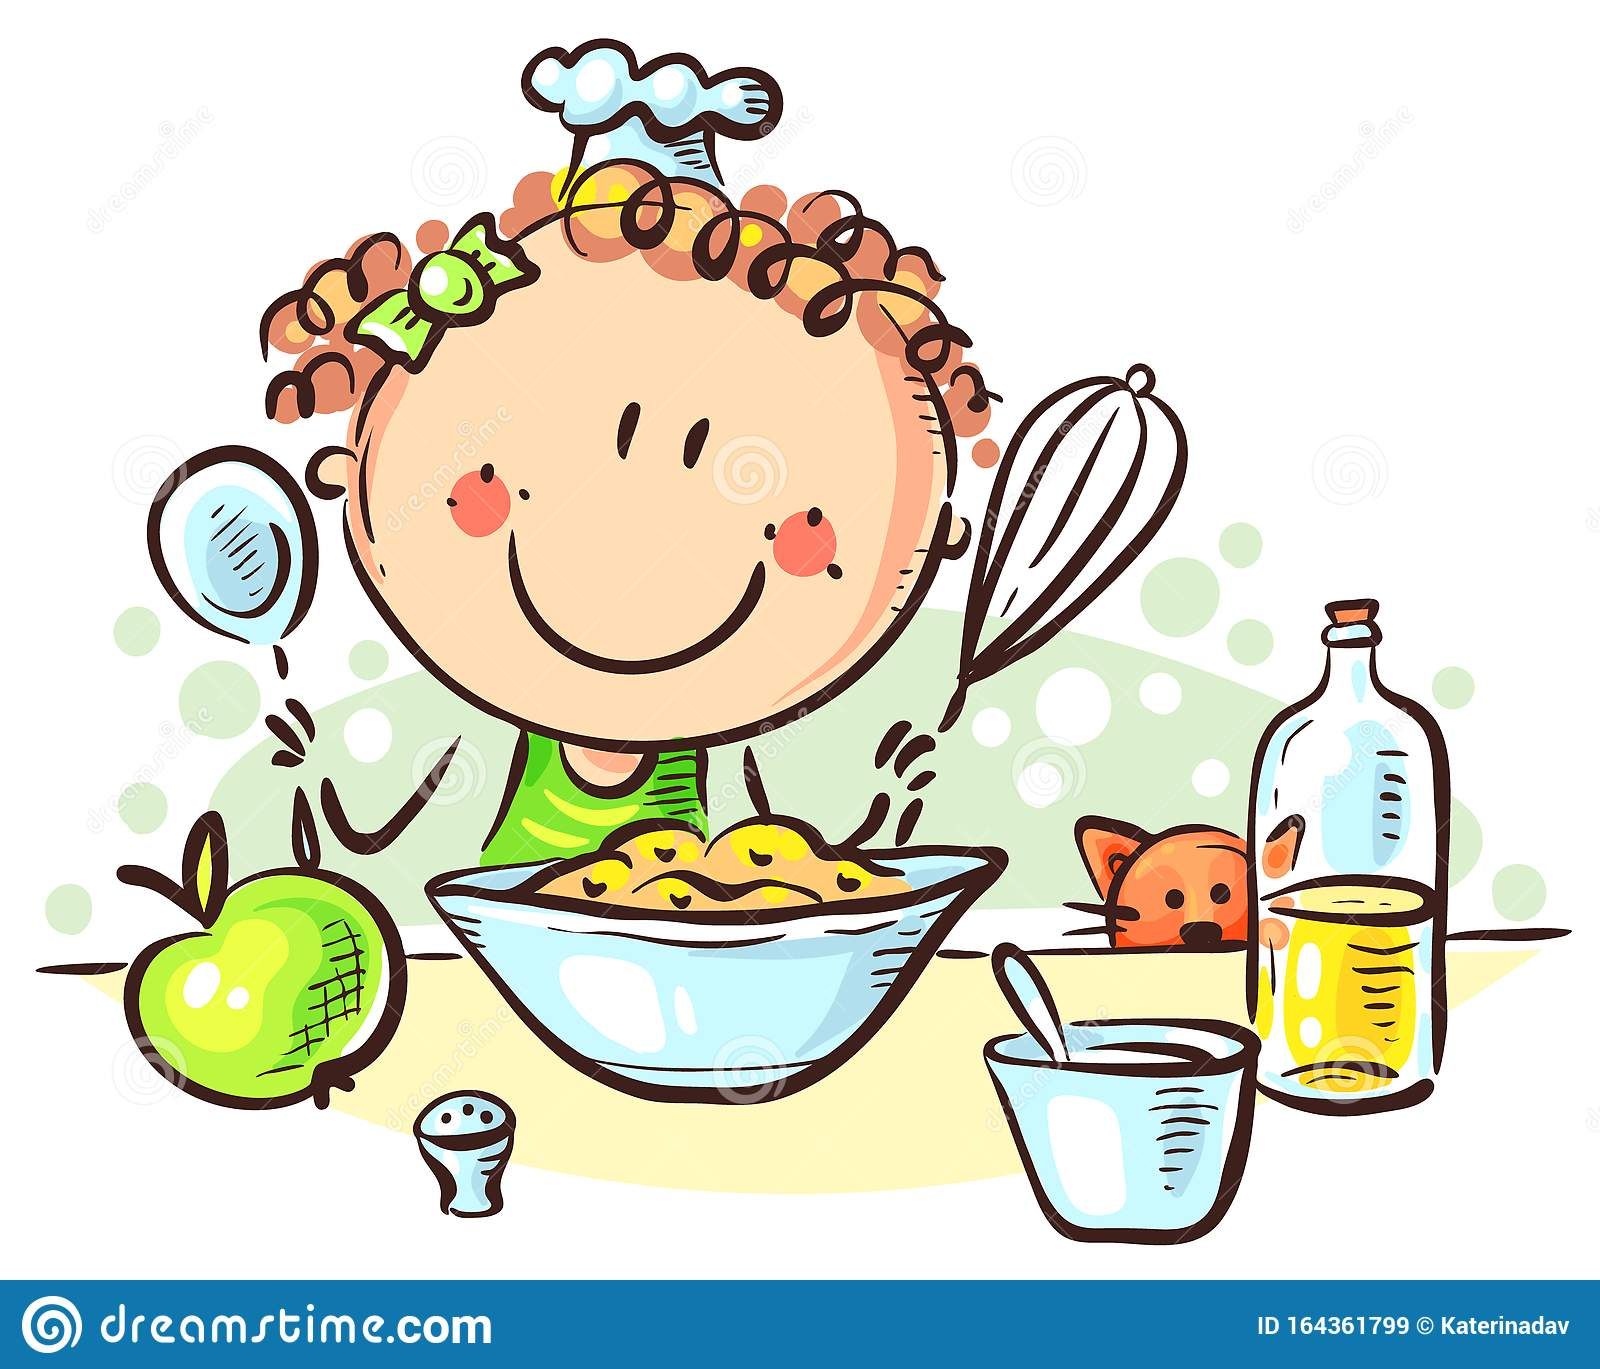 Happy Cartoon Girl Cooking Colorful Vector Illustration Stock Vector Illustration Of Clipart Dinner 164361799